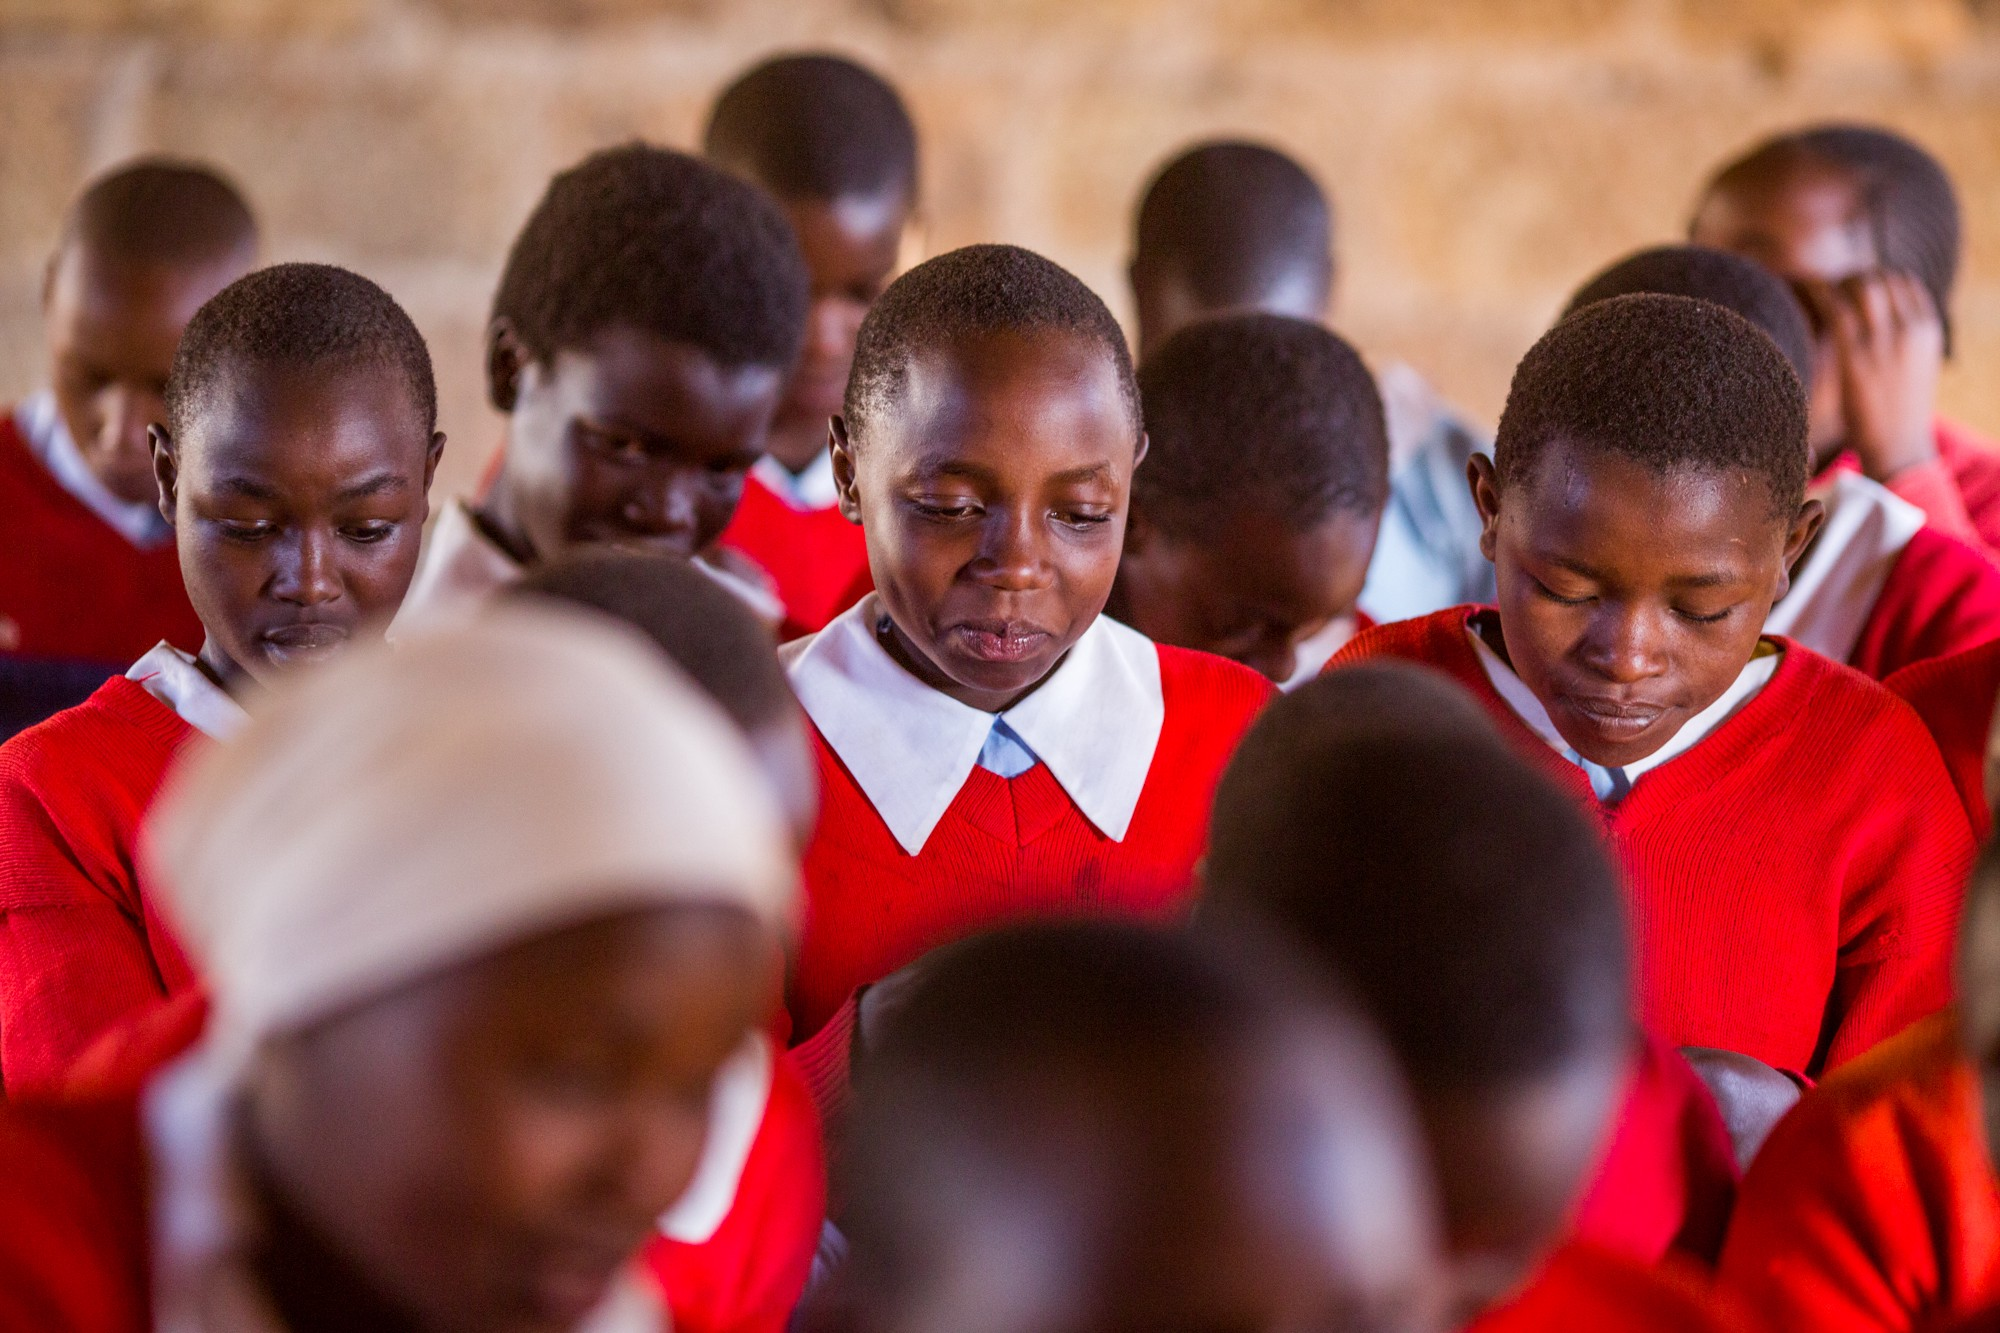 In developing countries around the world, 2 out of every 5 girls will miss up to five days of school each month when they're on their period.